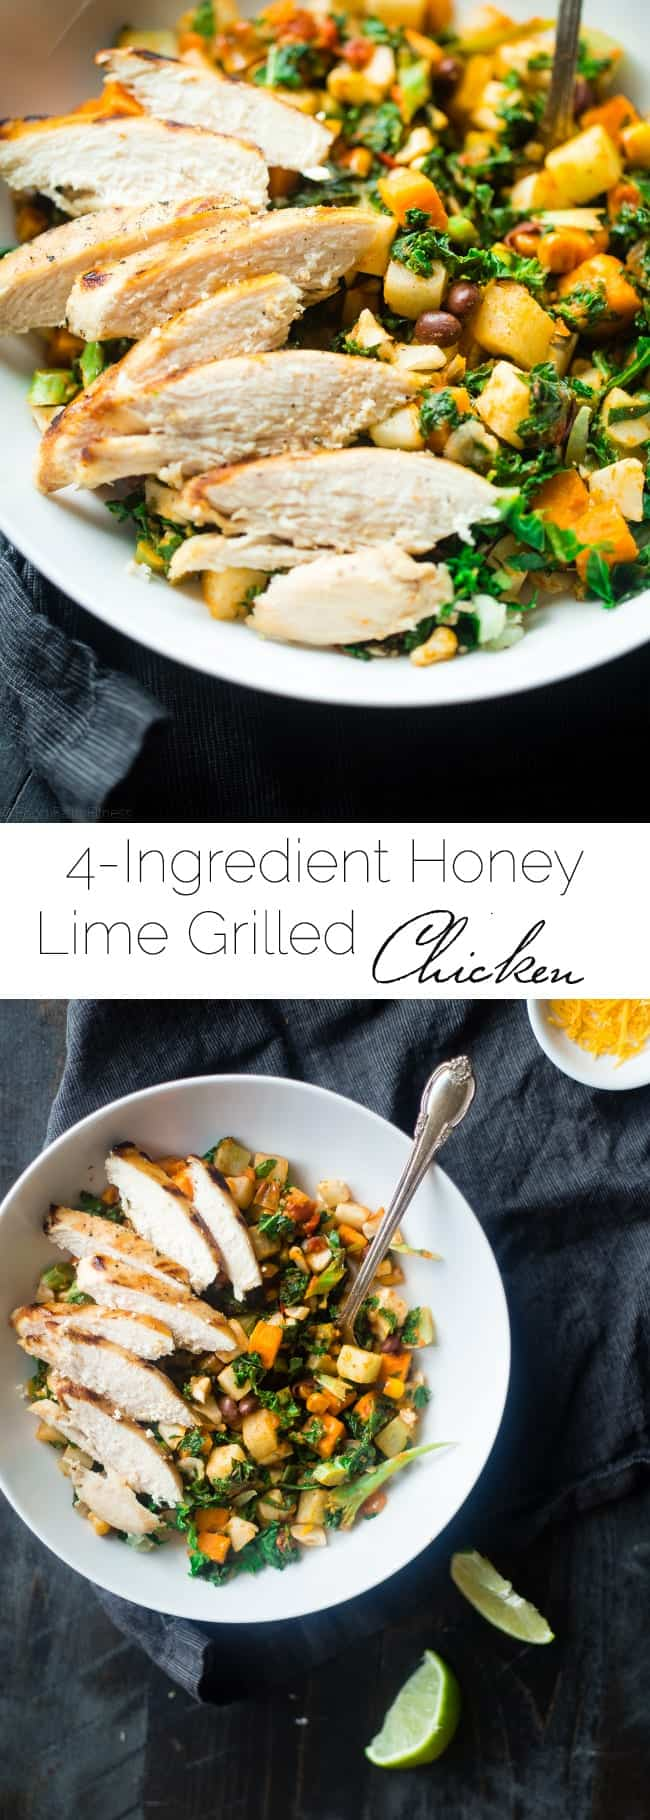 4 Ingredient Honey Lime Grilled Chicken - This easy honey lime chicken only uses 3 ingredients and is ready in 15 minutes! It's a healthy, protein packed and gluten free addition to your next dinner! | Foodfaithfitness.com | @FoodFaithFit